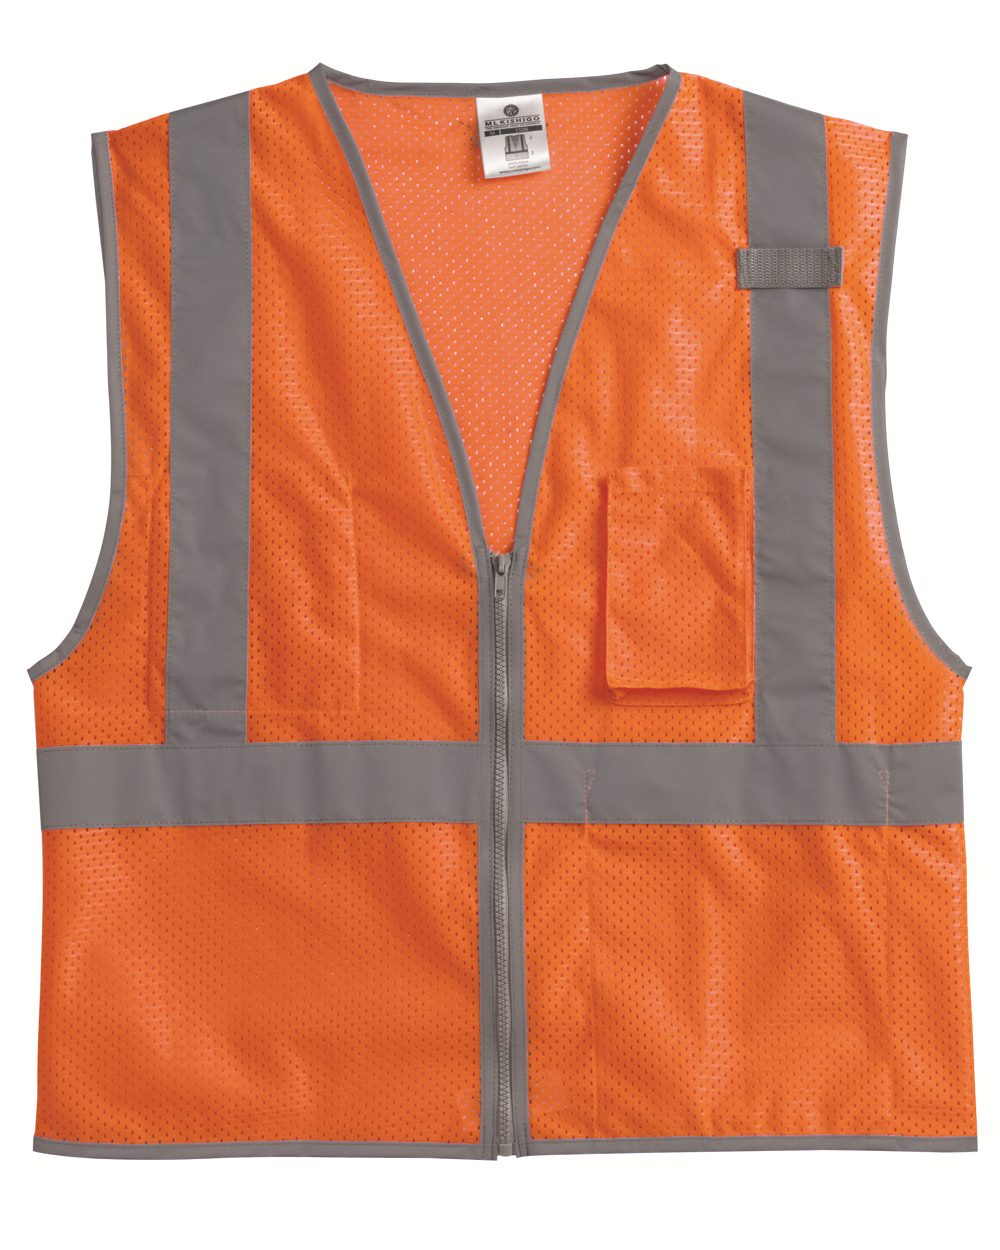 ML Kishigo 1507-1508 - Brilliant Series Economy Vest